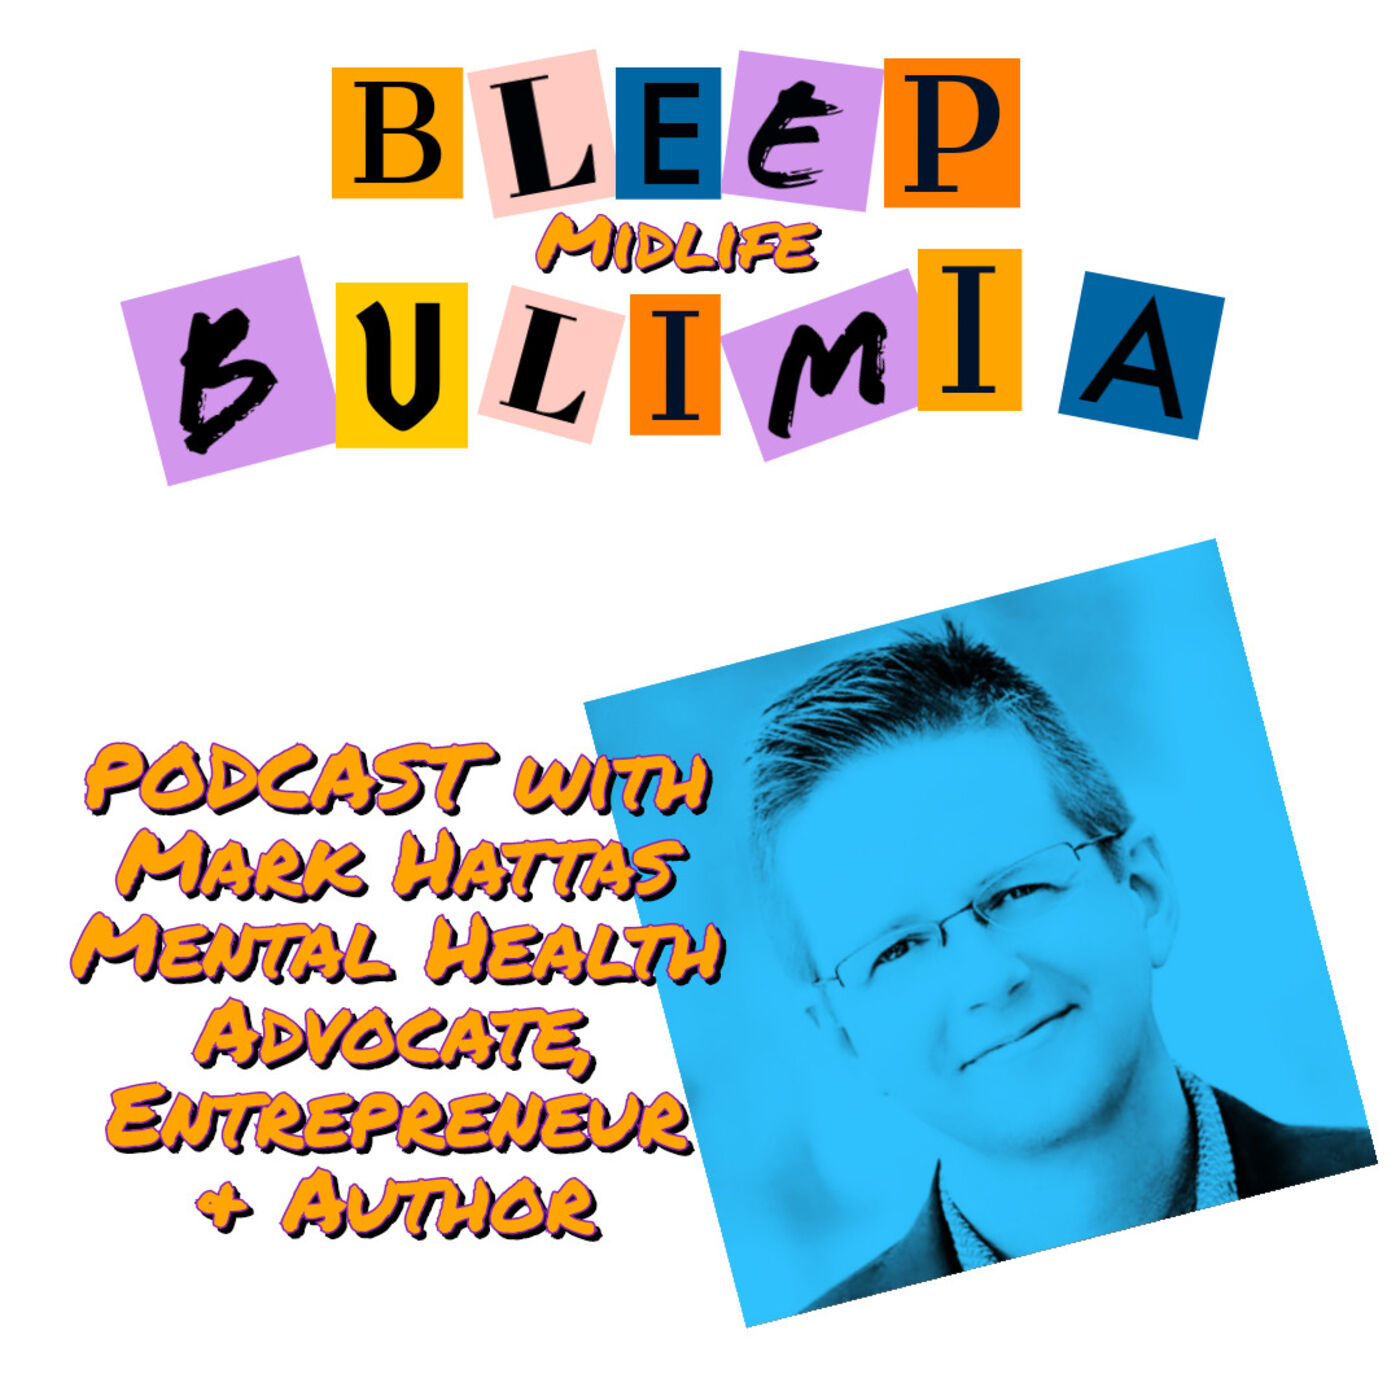 Bleep Bulimia Episode 43 with Mark Hattas, Mental Health Advocate, Entrepreneur and Author